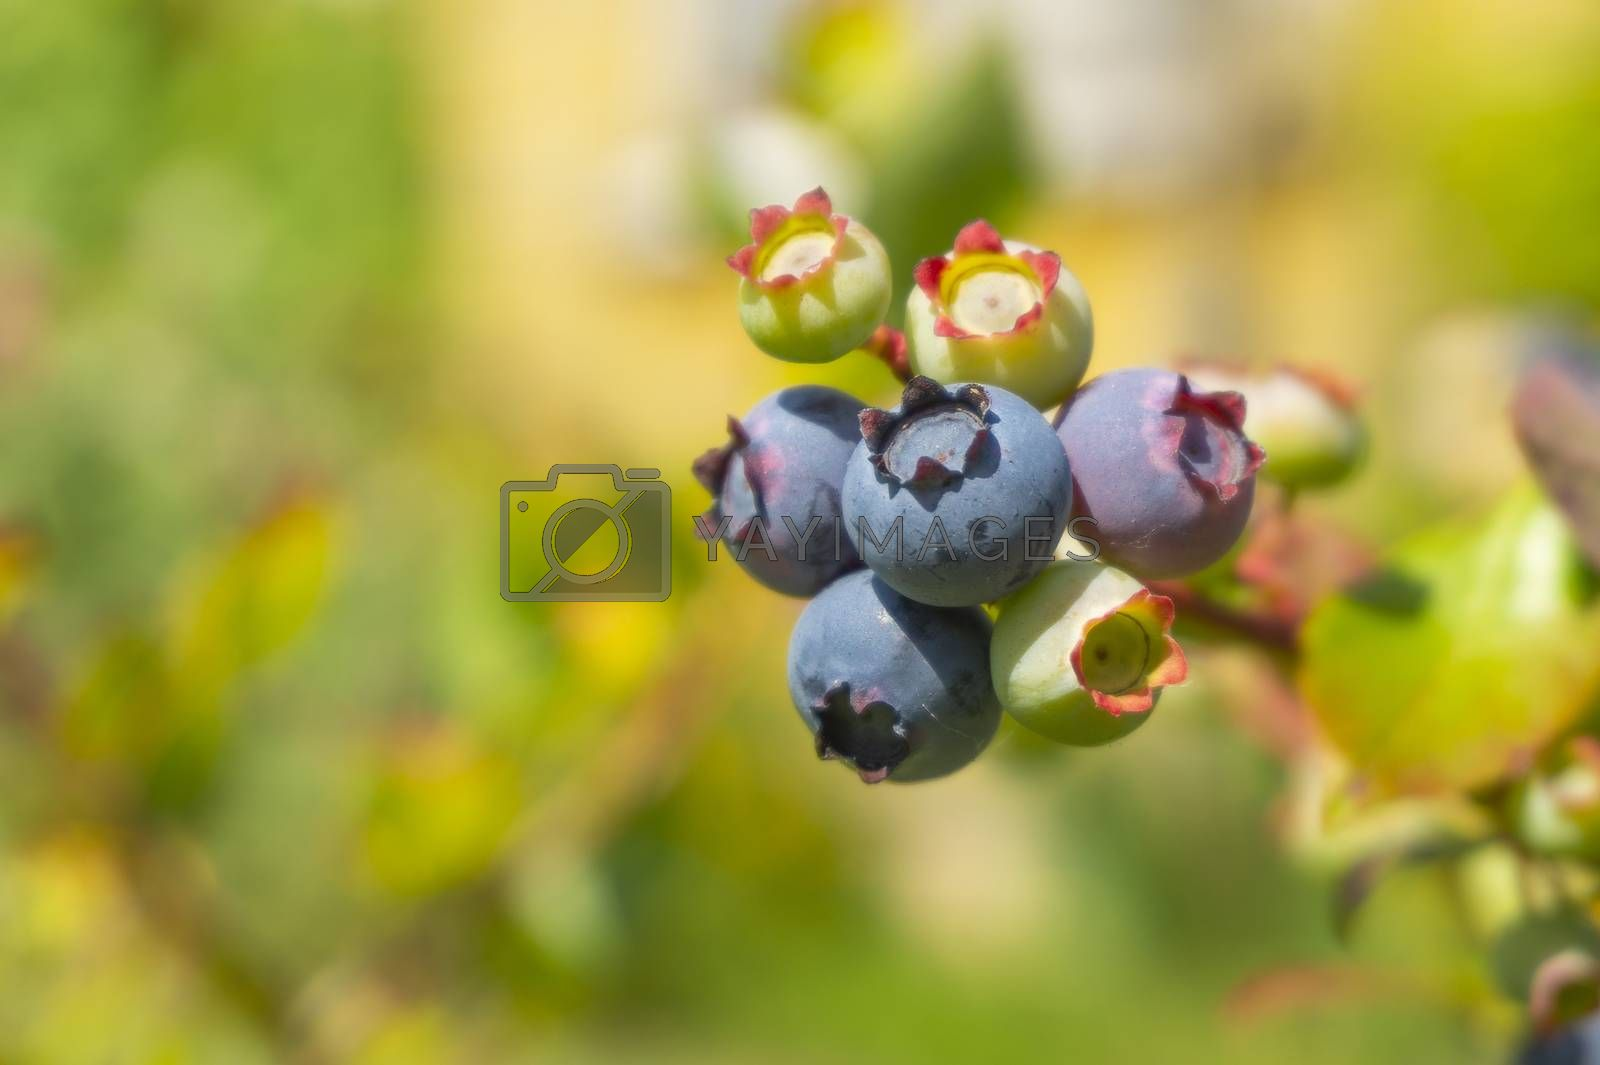 Ripening blueberry in a cluster on a bush outdoors in summer sunshine in close up with copyspace